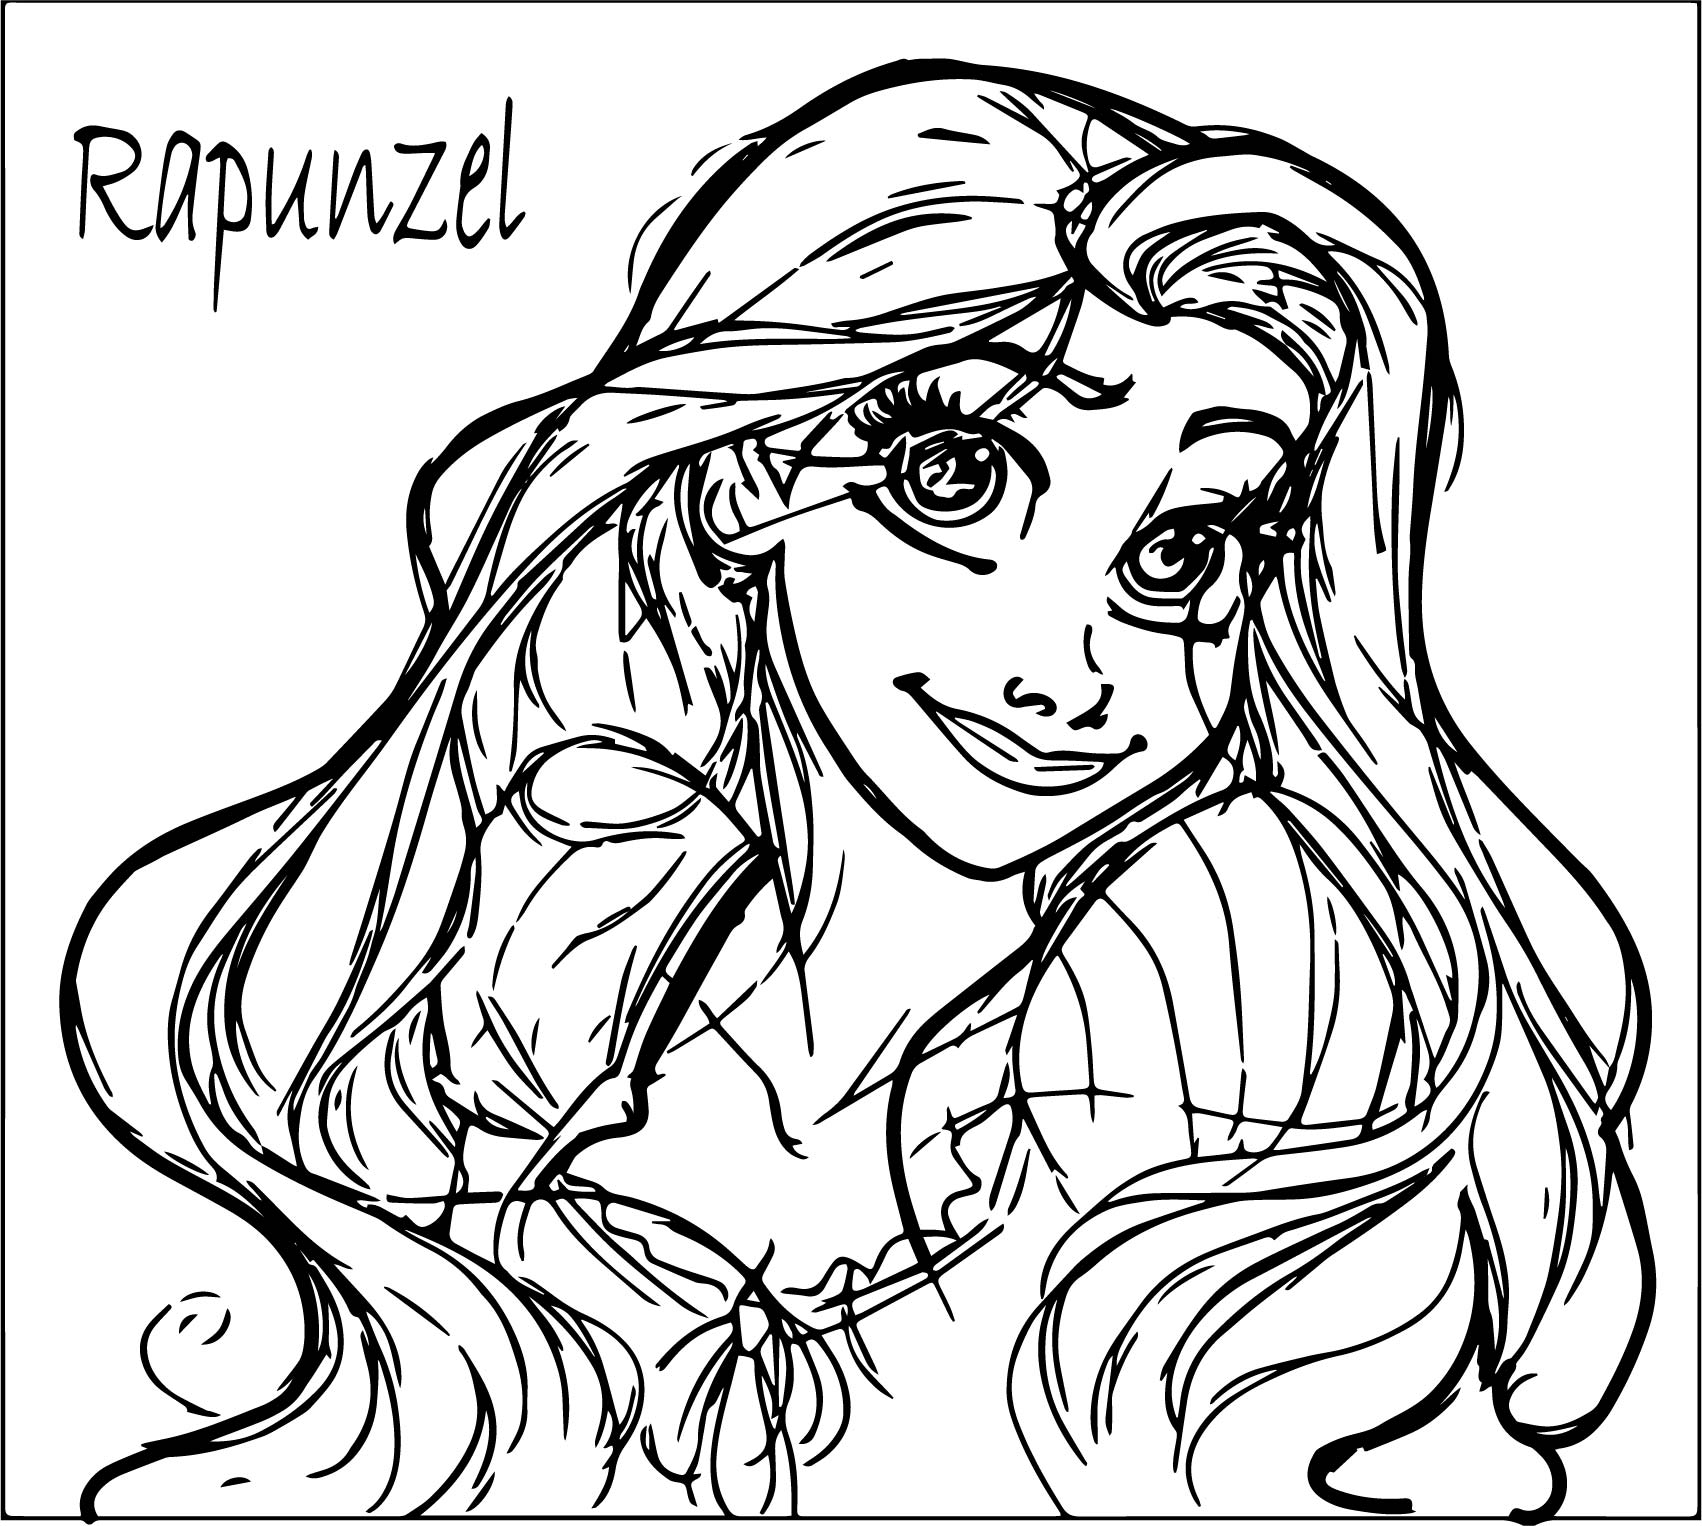 Disney Rapunzel From Tangled Coloring Page